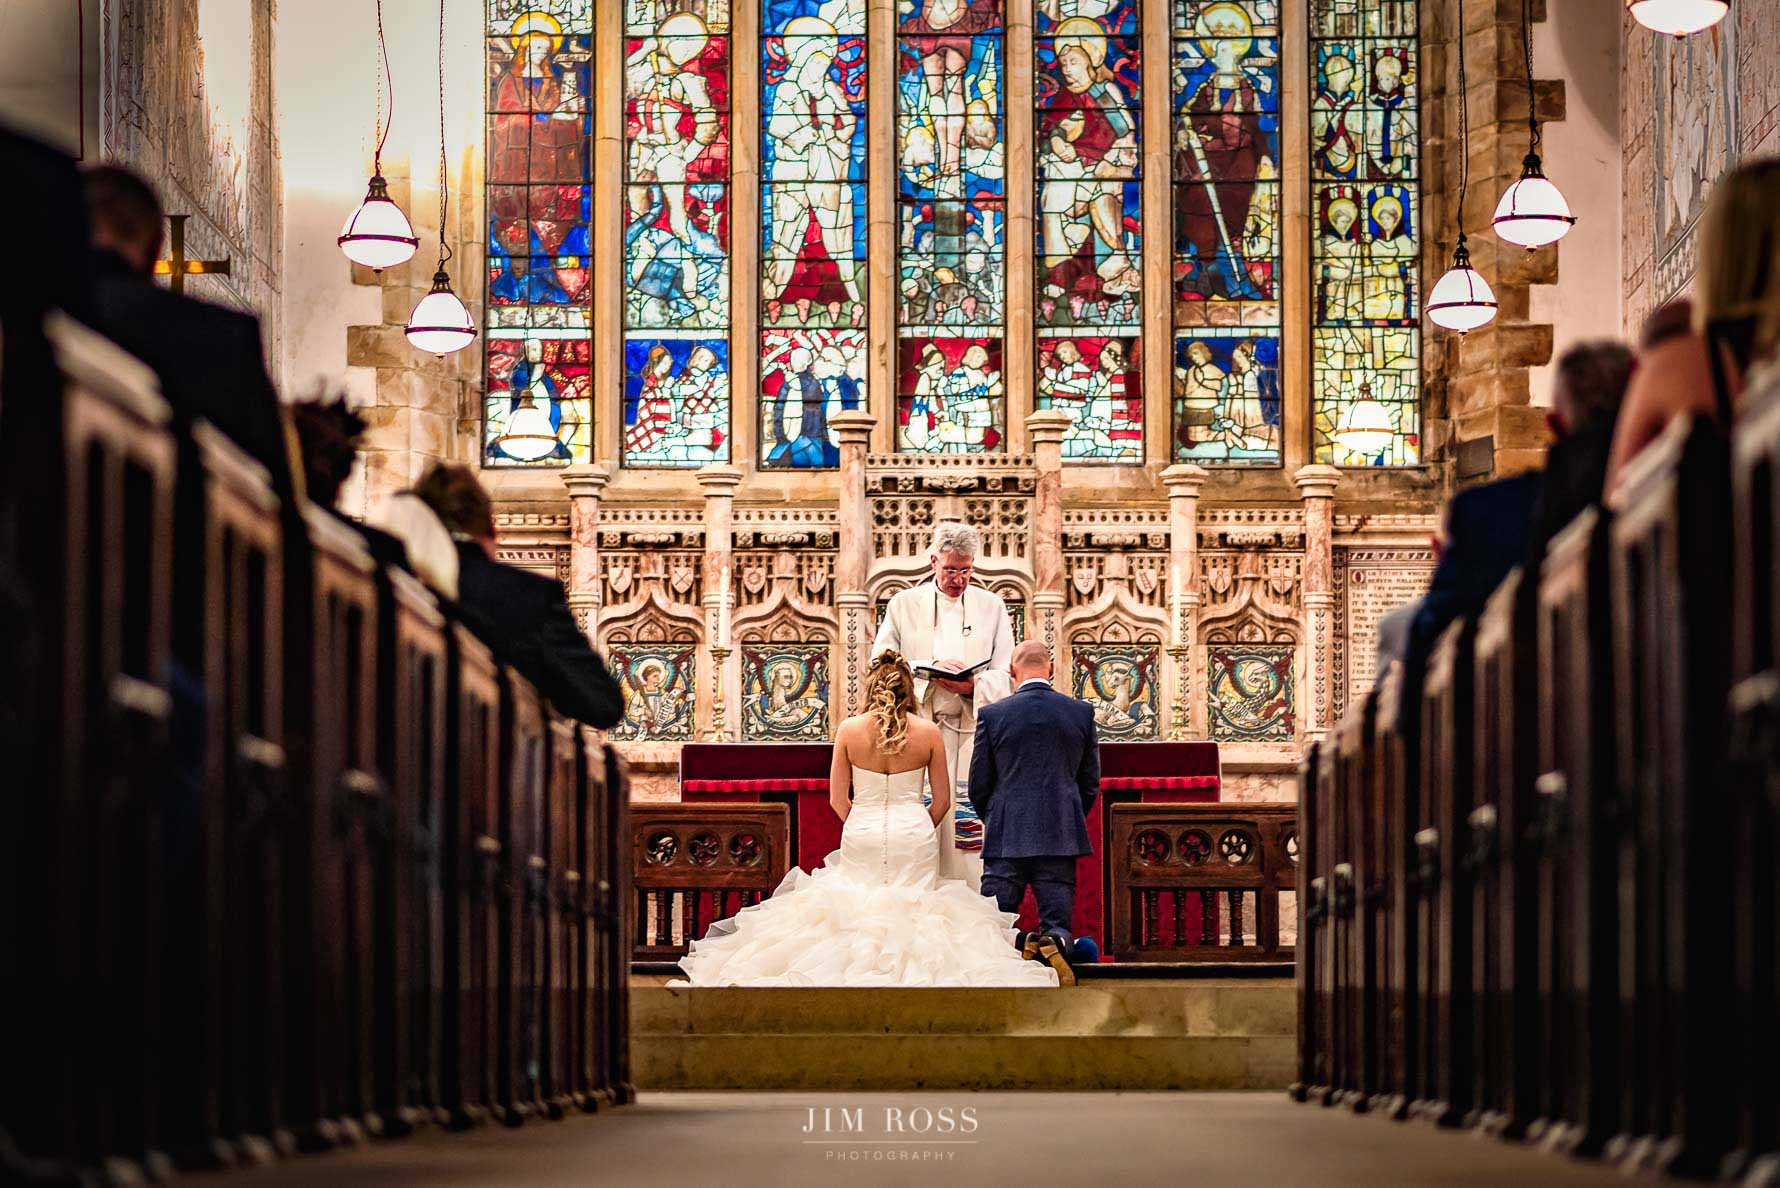 Couple kneeling for vows in church